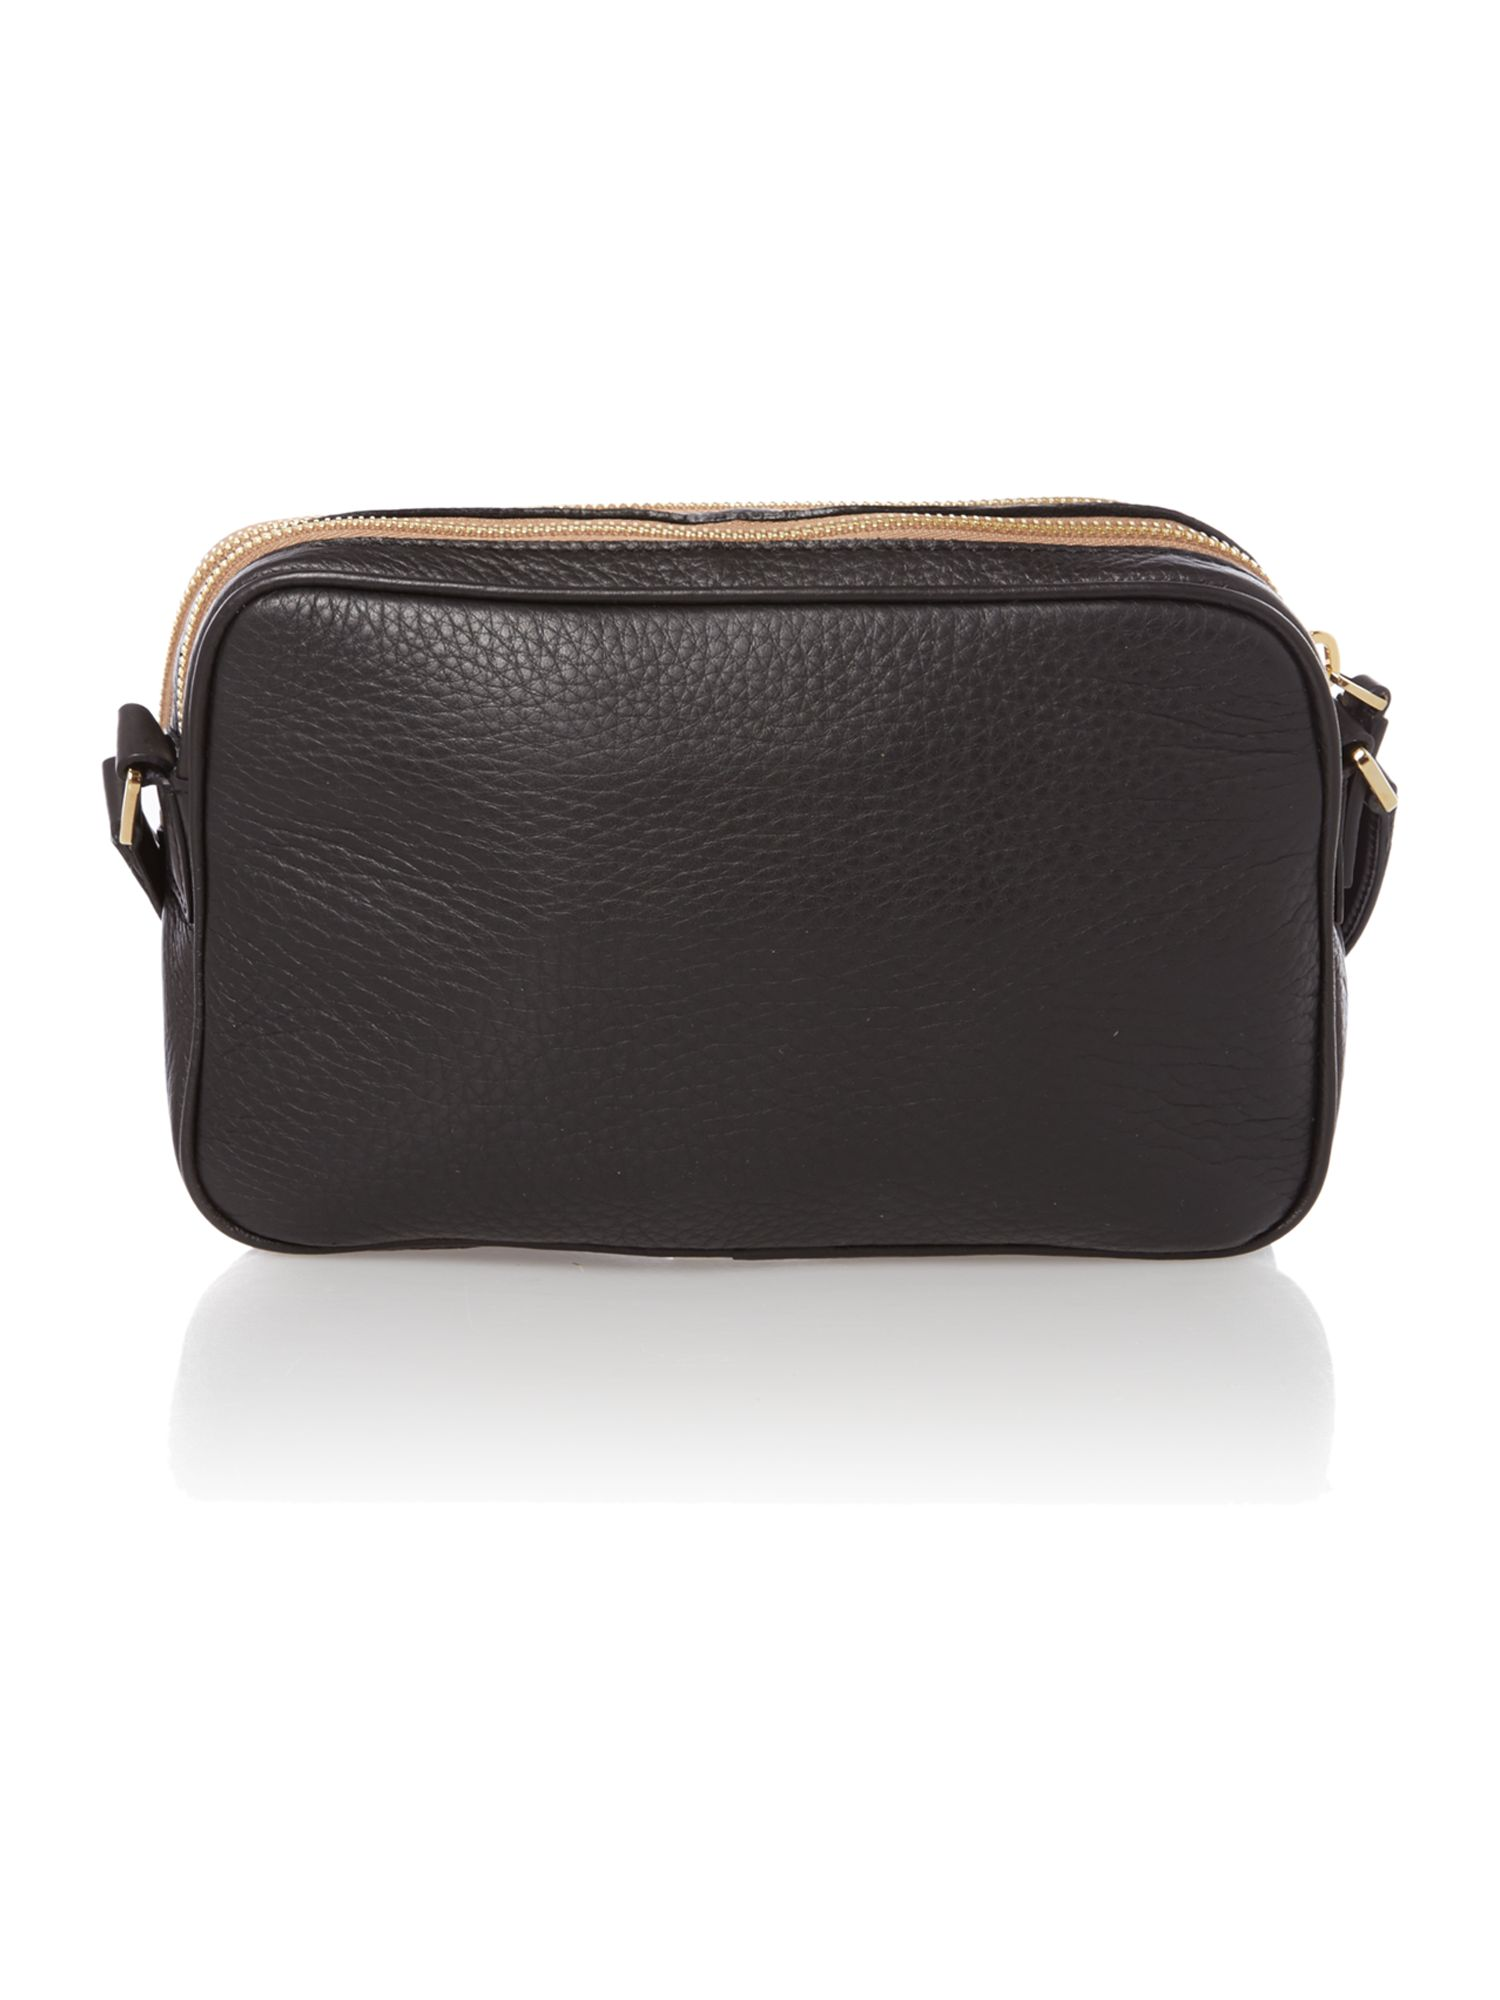 Albermarle black mini cross body bag